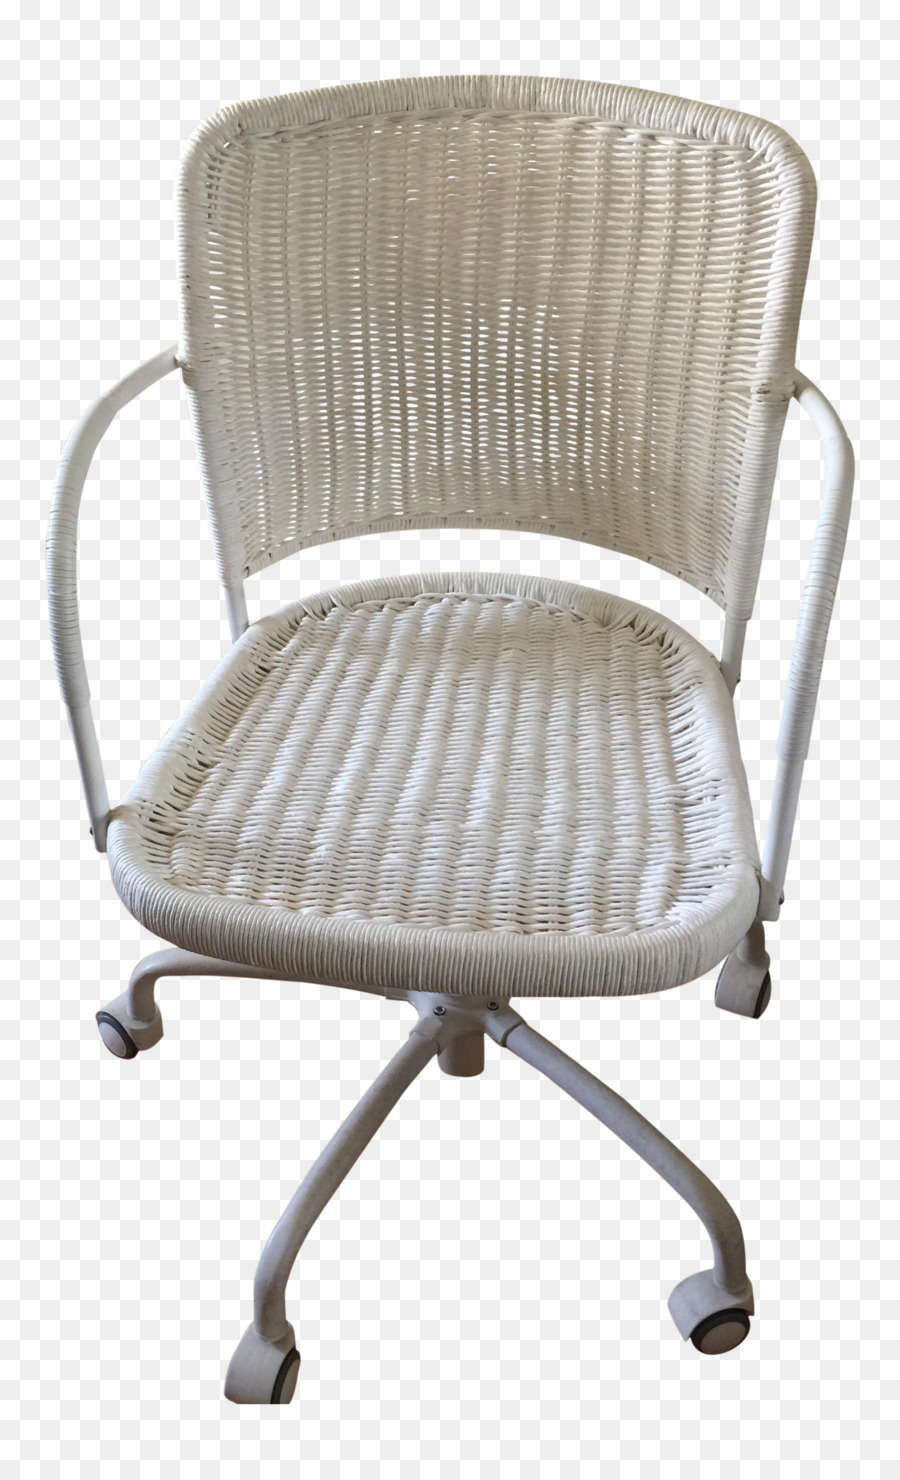 Delicieux Chair, Wicker, Office Desk Chairs PNG